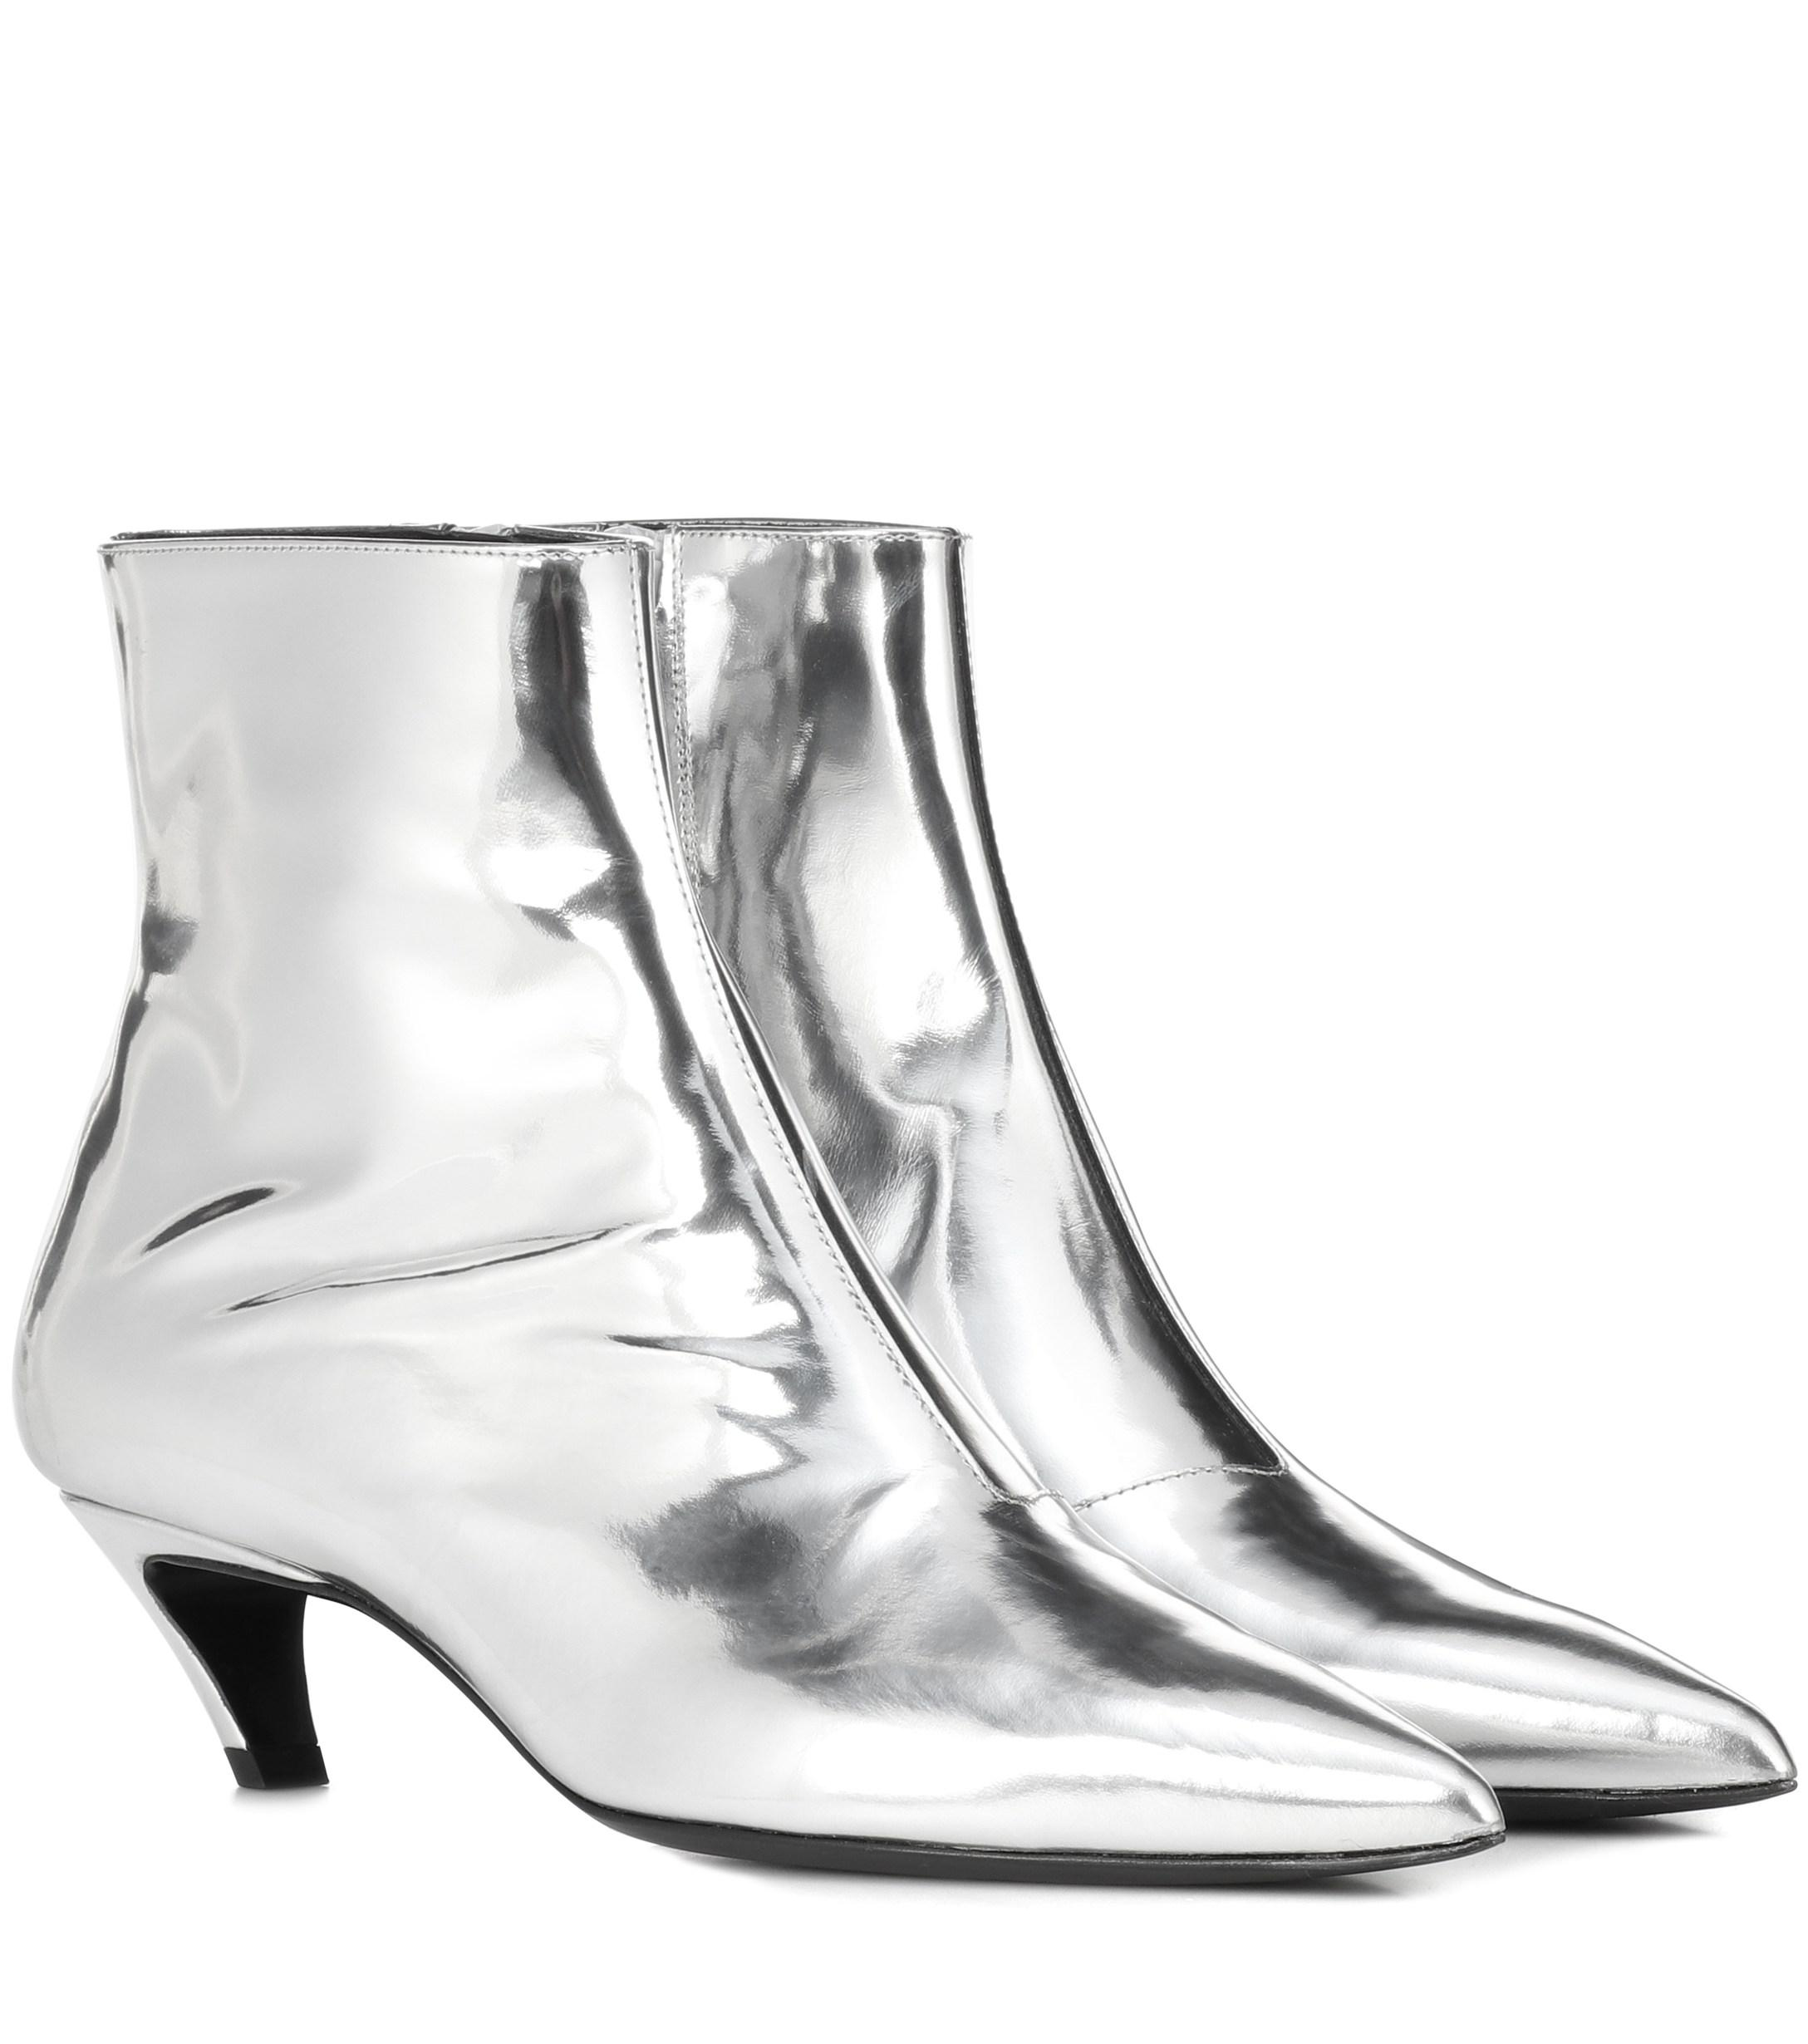 52971fc83749 Balenciaga. Women s Metallic Leather Ankle Boots